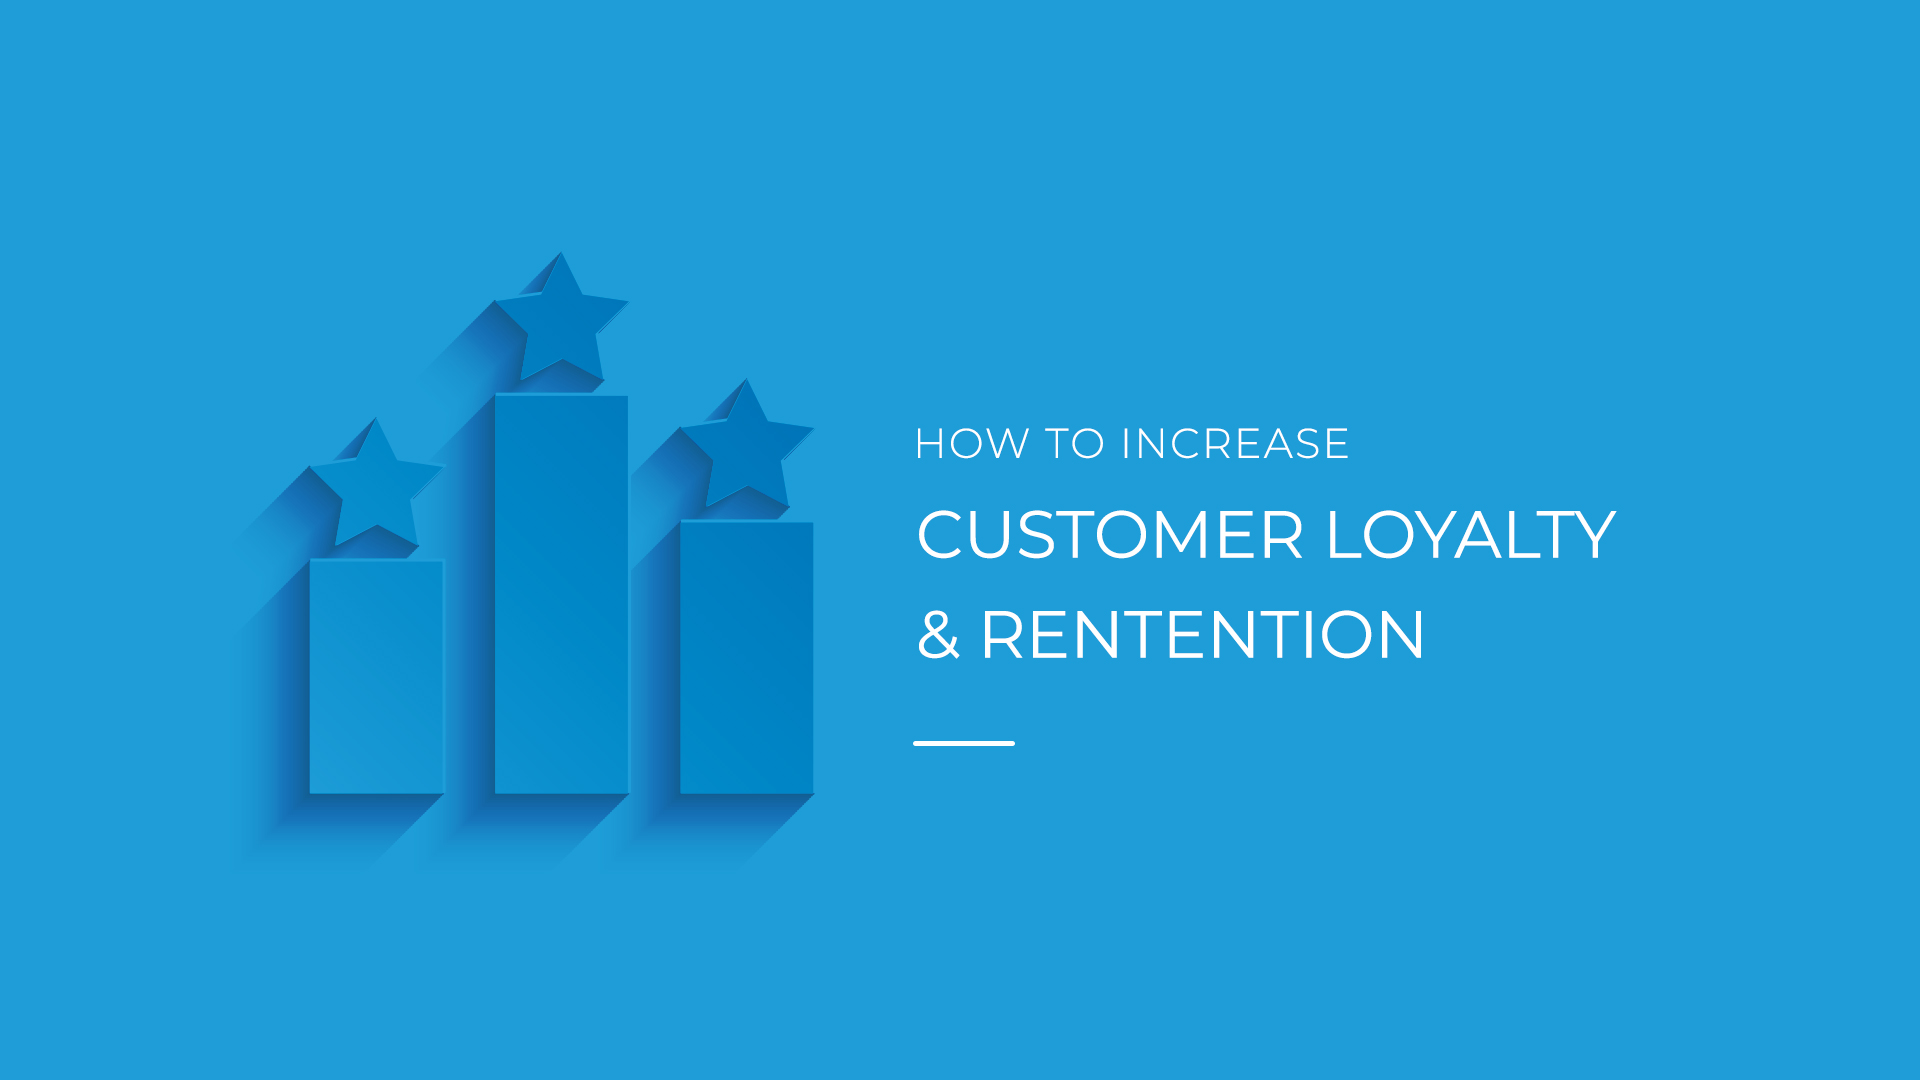 How to Increase Customer Loyalty & Retention